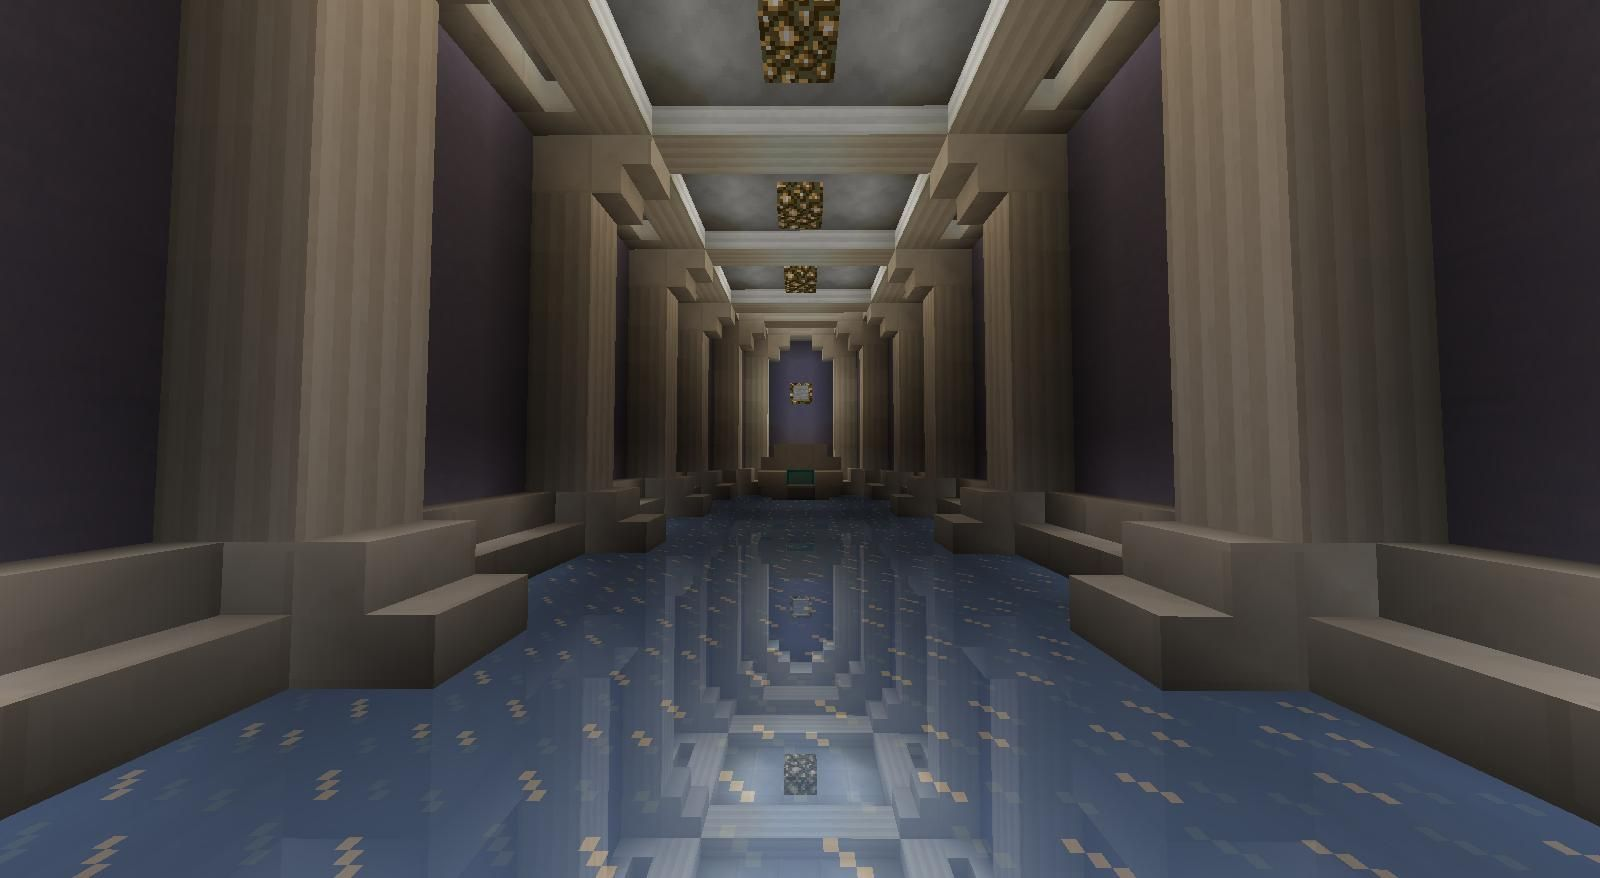 Detail Mirror Effect Using Ice Minecraft Castle Minecraft Interior Design Minecraft